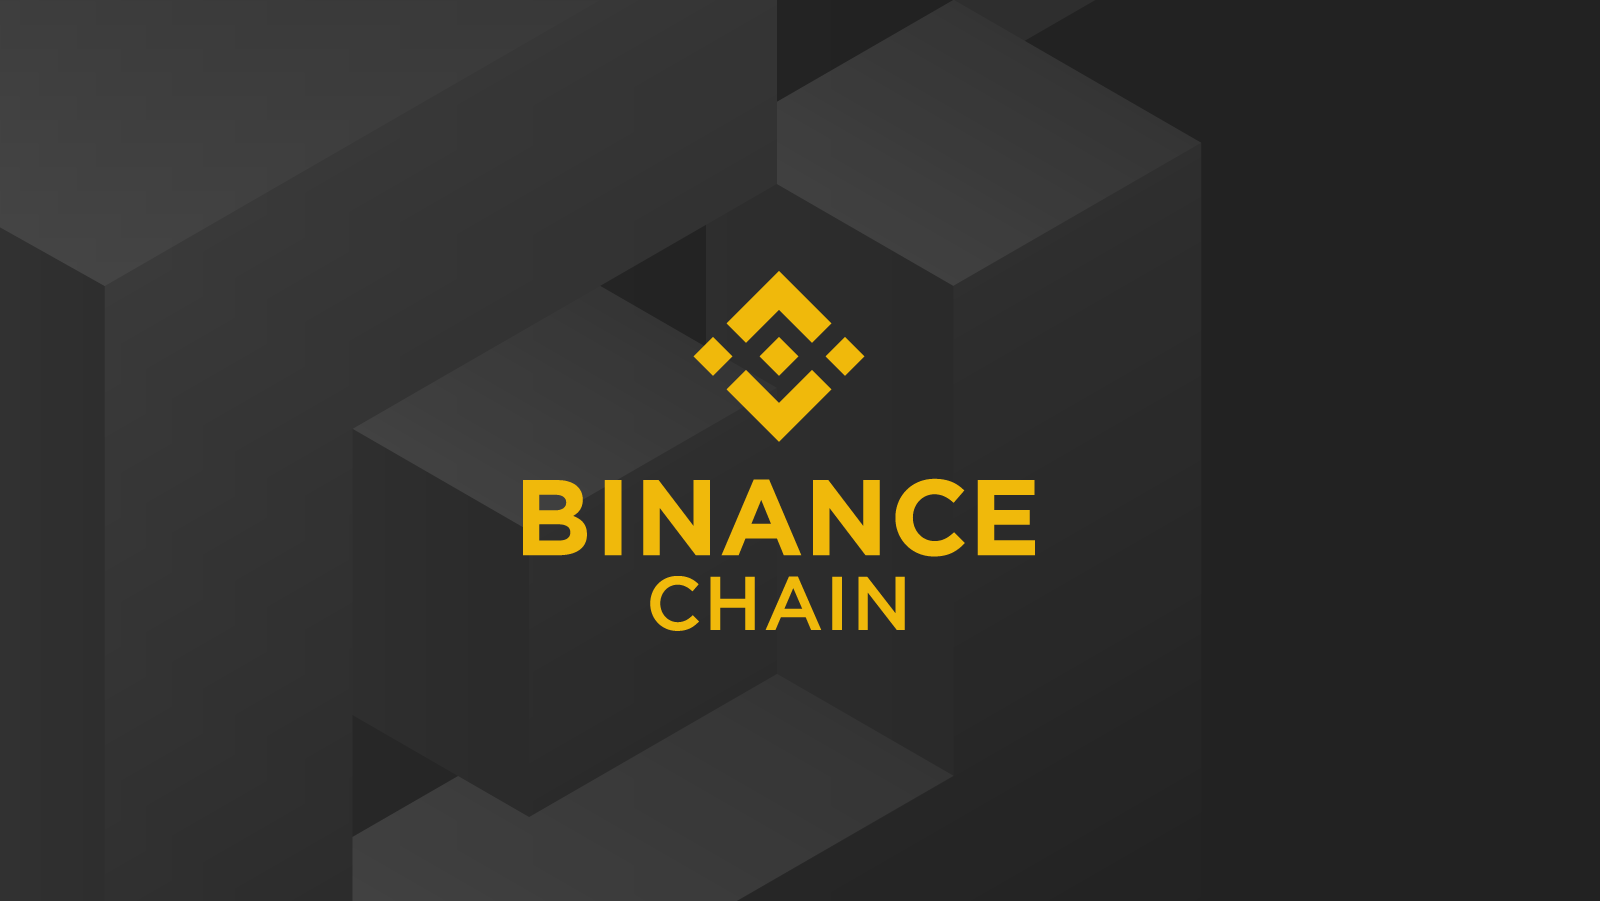 Binance Chain: Blockchain for Exchanging the World | Binance Blog